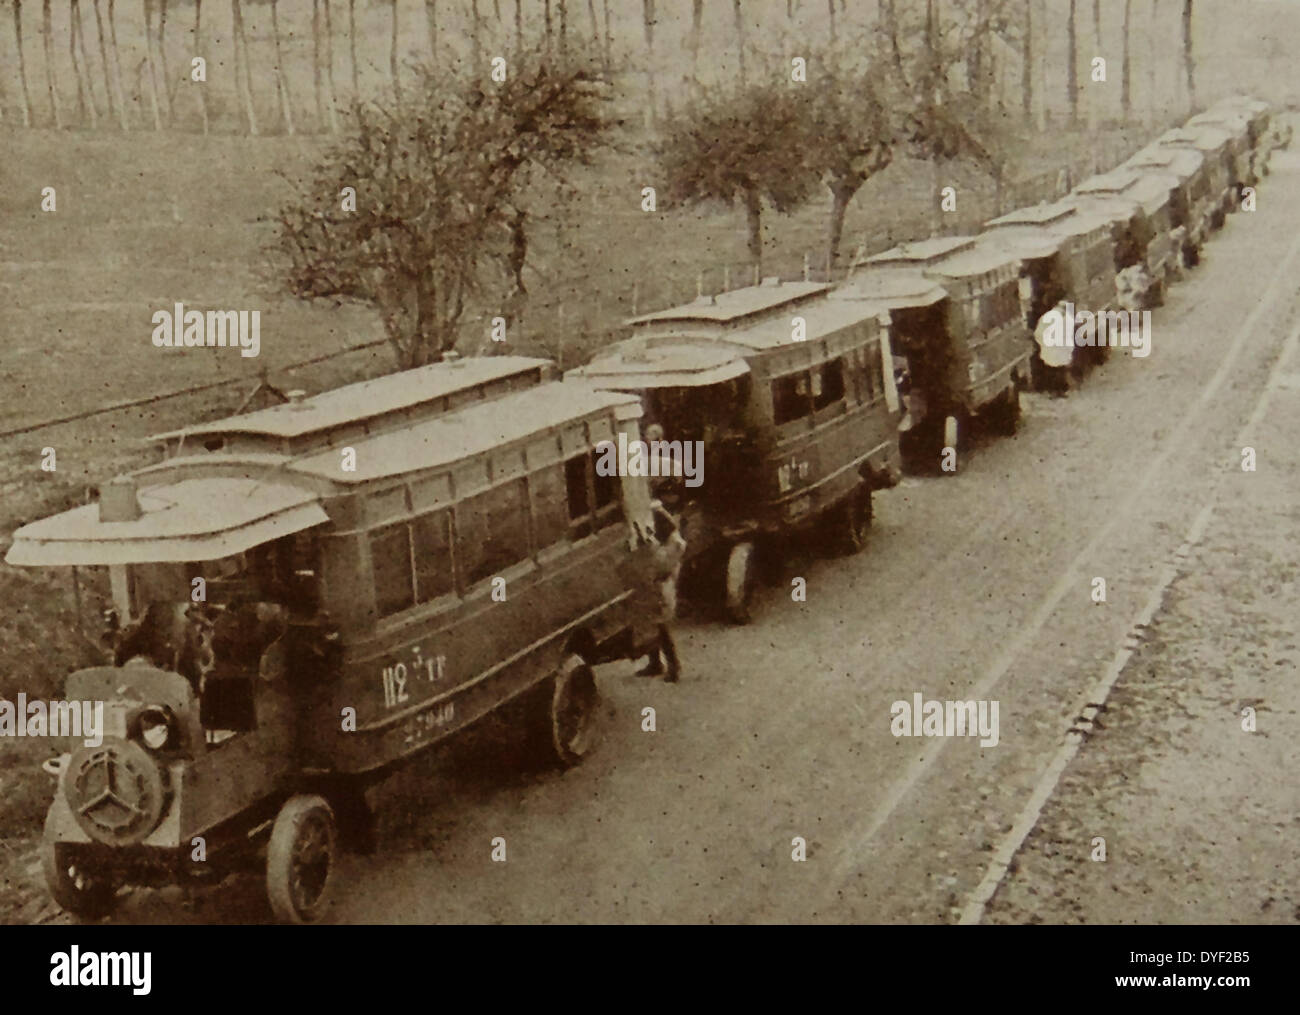 French military transport of troops by bus. - Stock Image